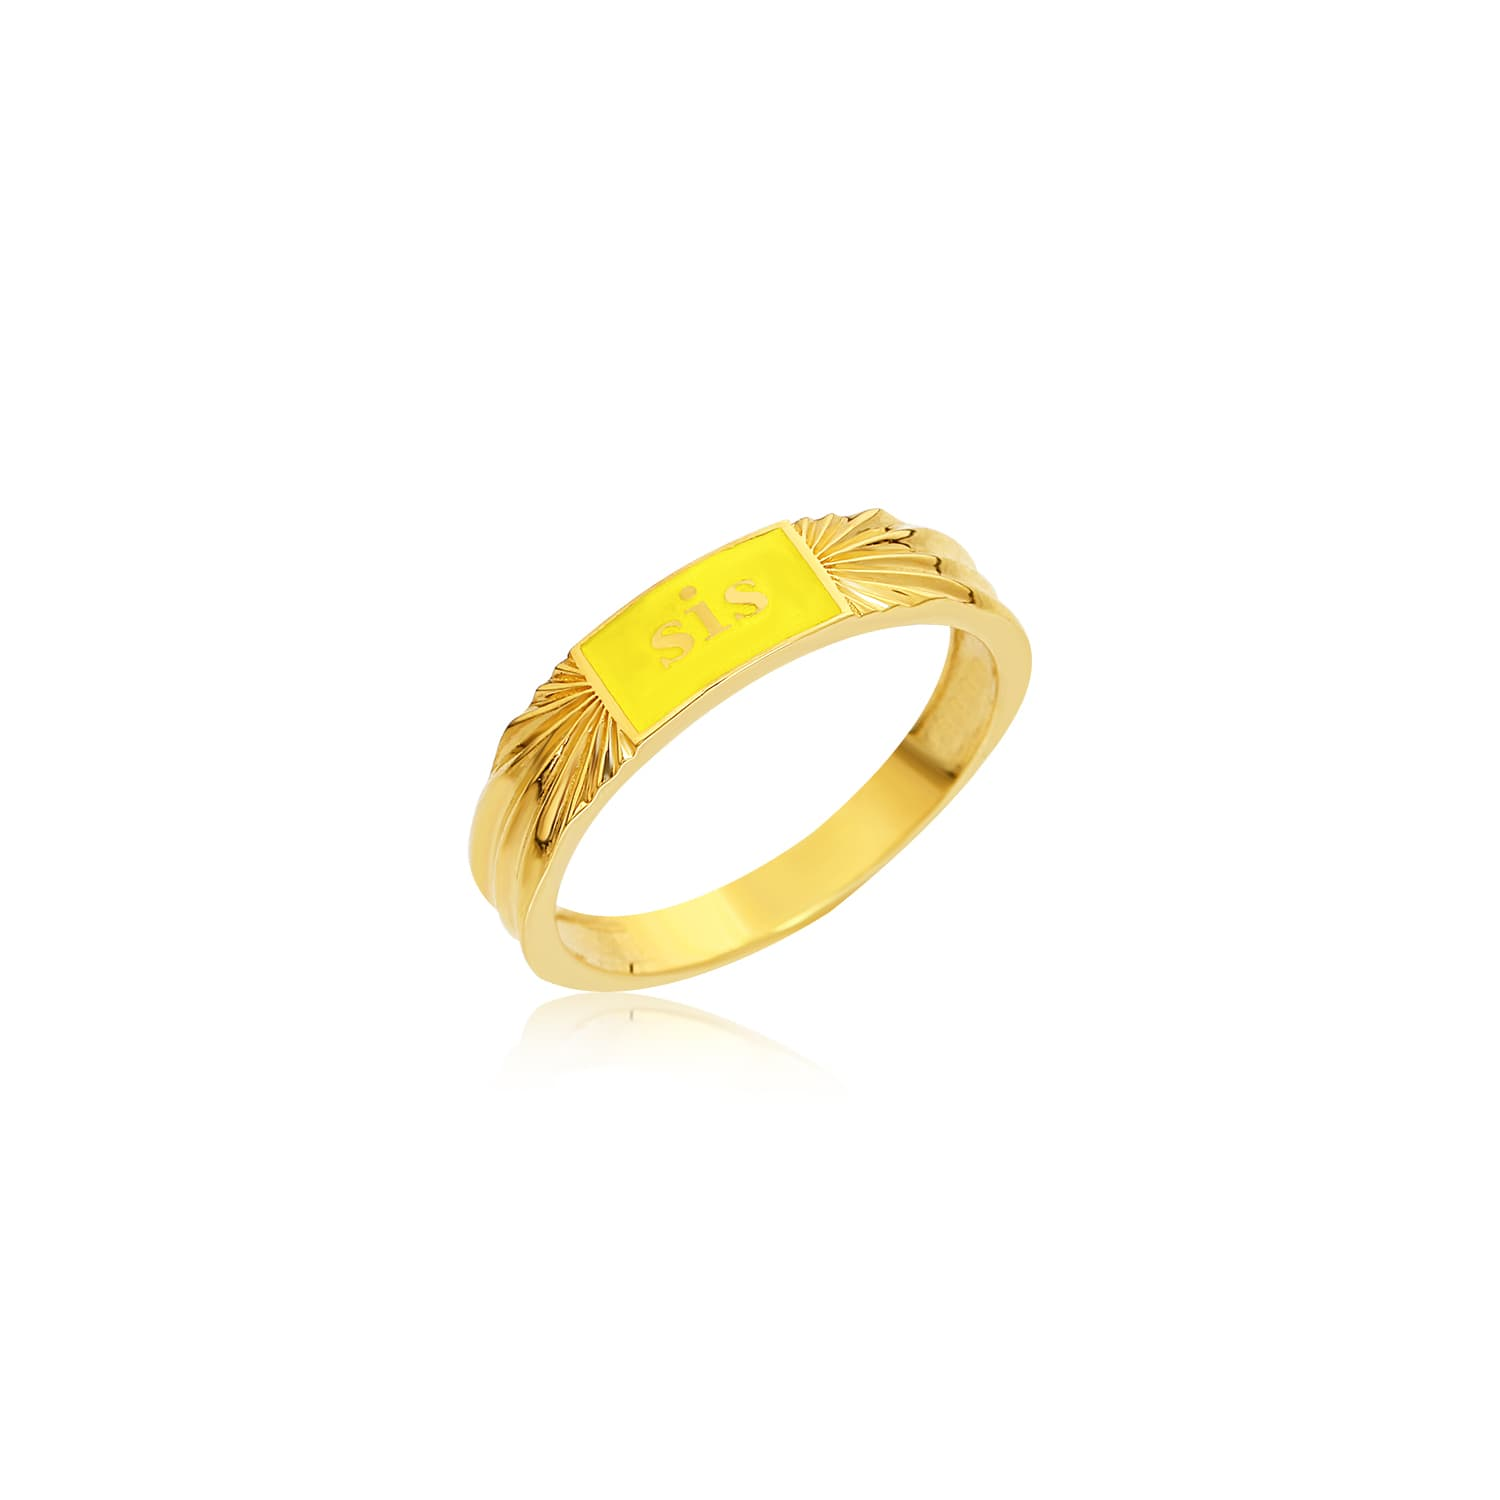 24 carat gold plated enamel ring on silver